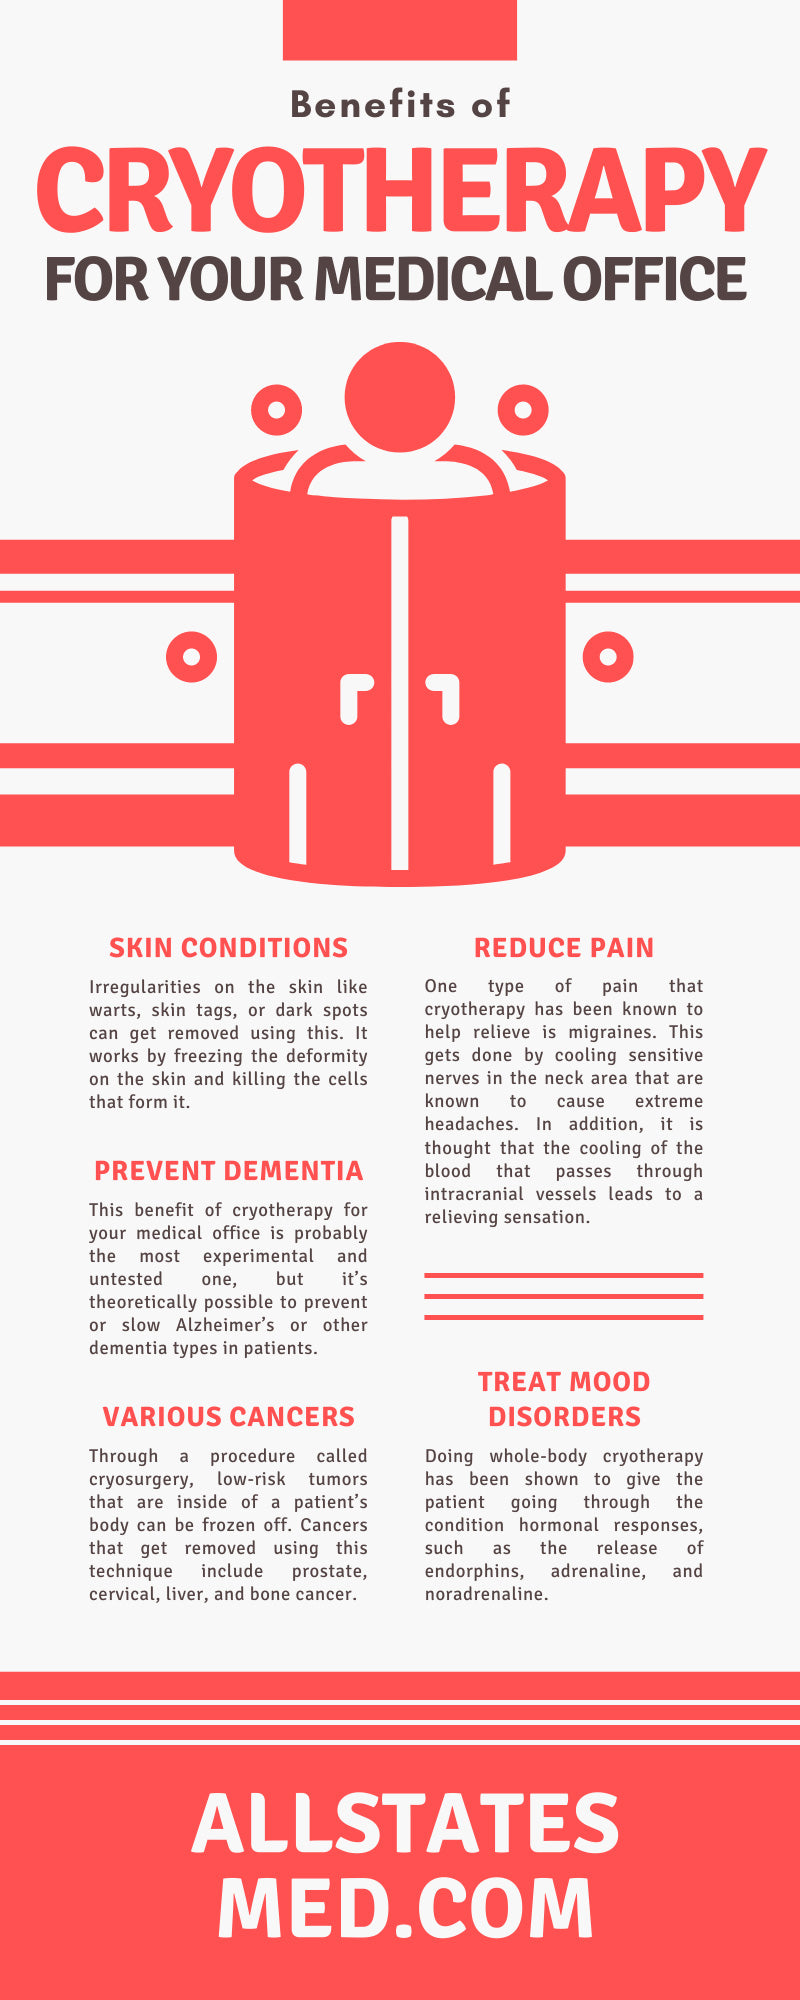 Benefits of Cryotherapy for Your Medical Office